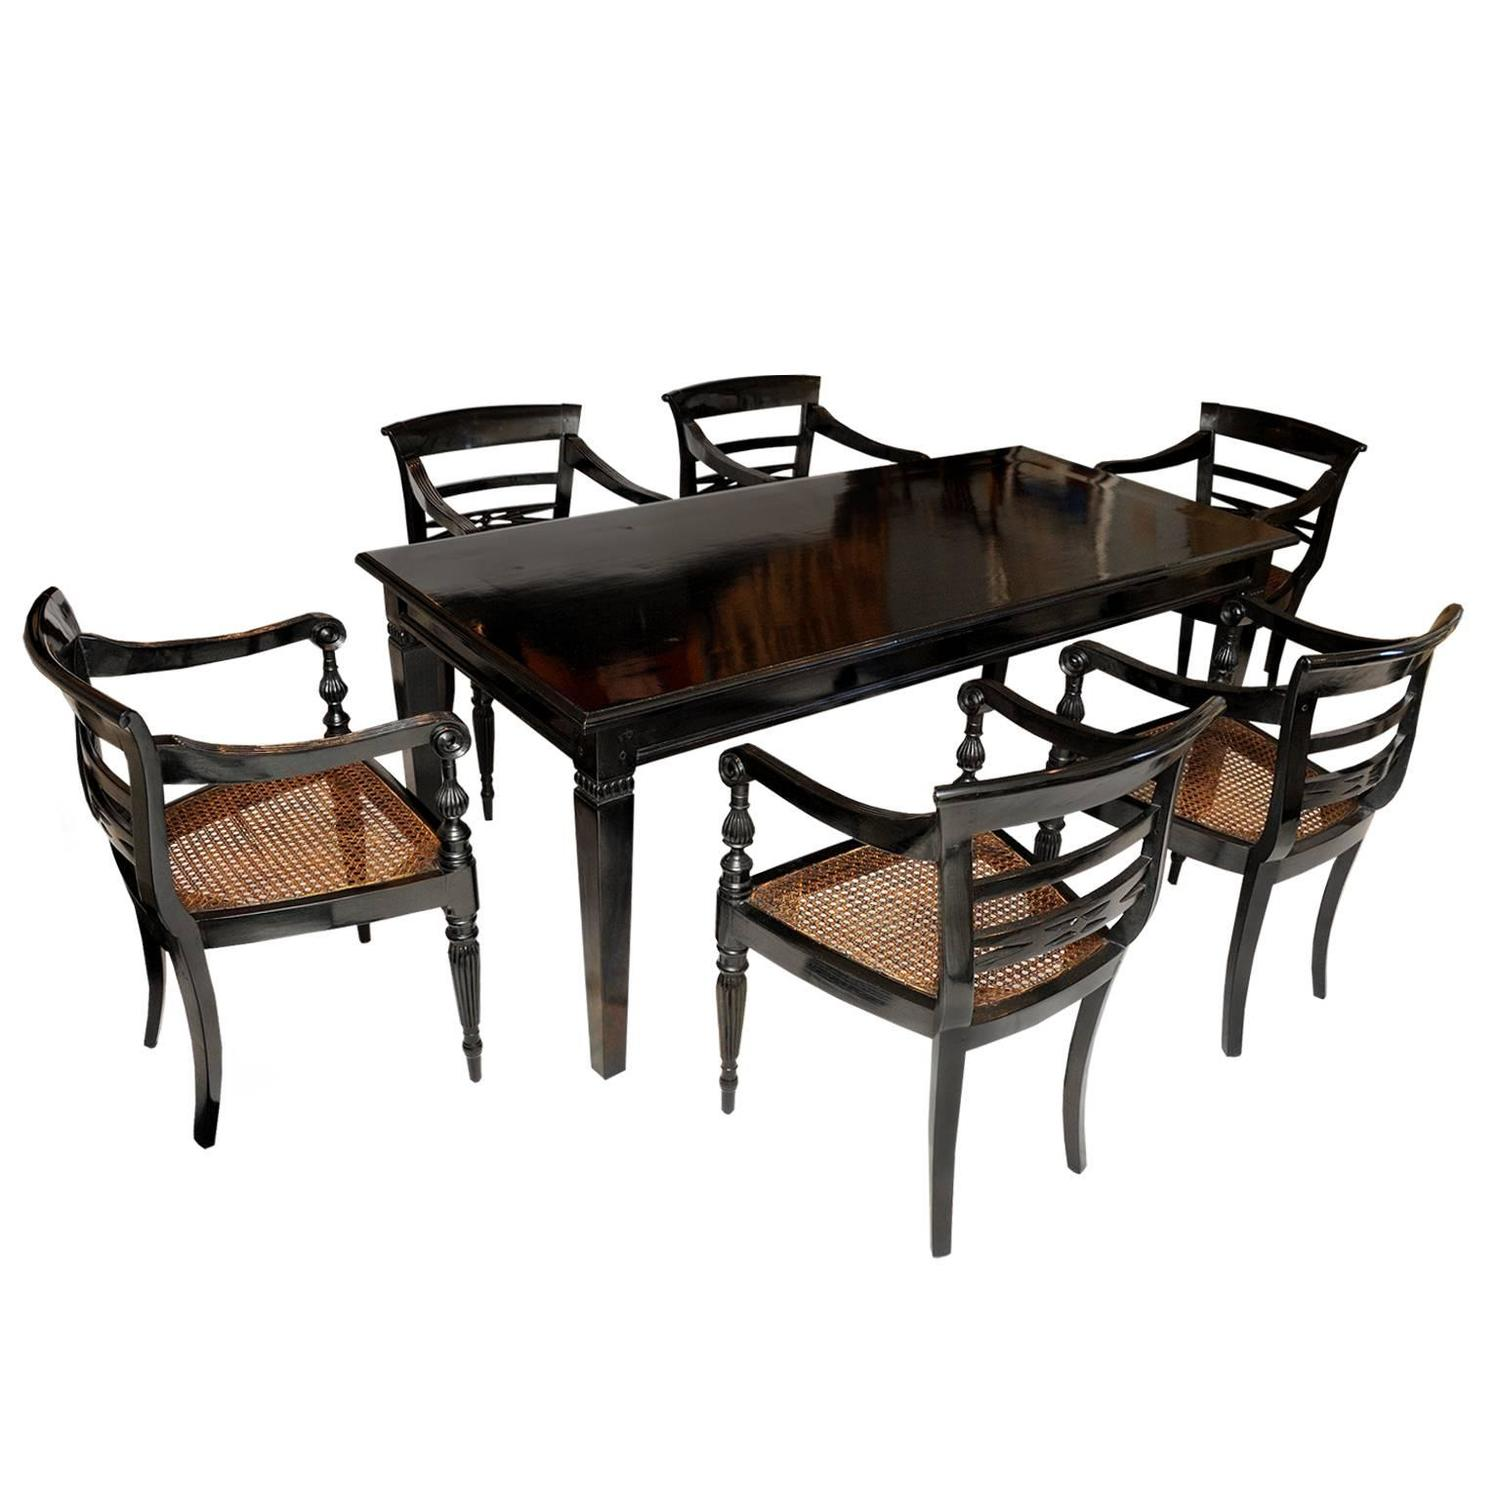 Anglo Indian 19th Century Dining Table and Six Chairs  : 142z from www.1stdibs.com size 1500 x 1500 jpeg 120kB